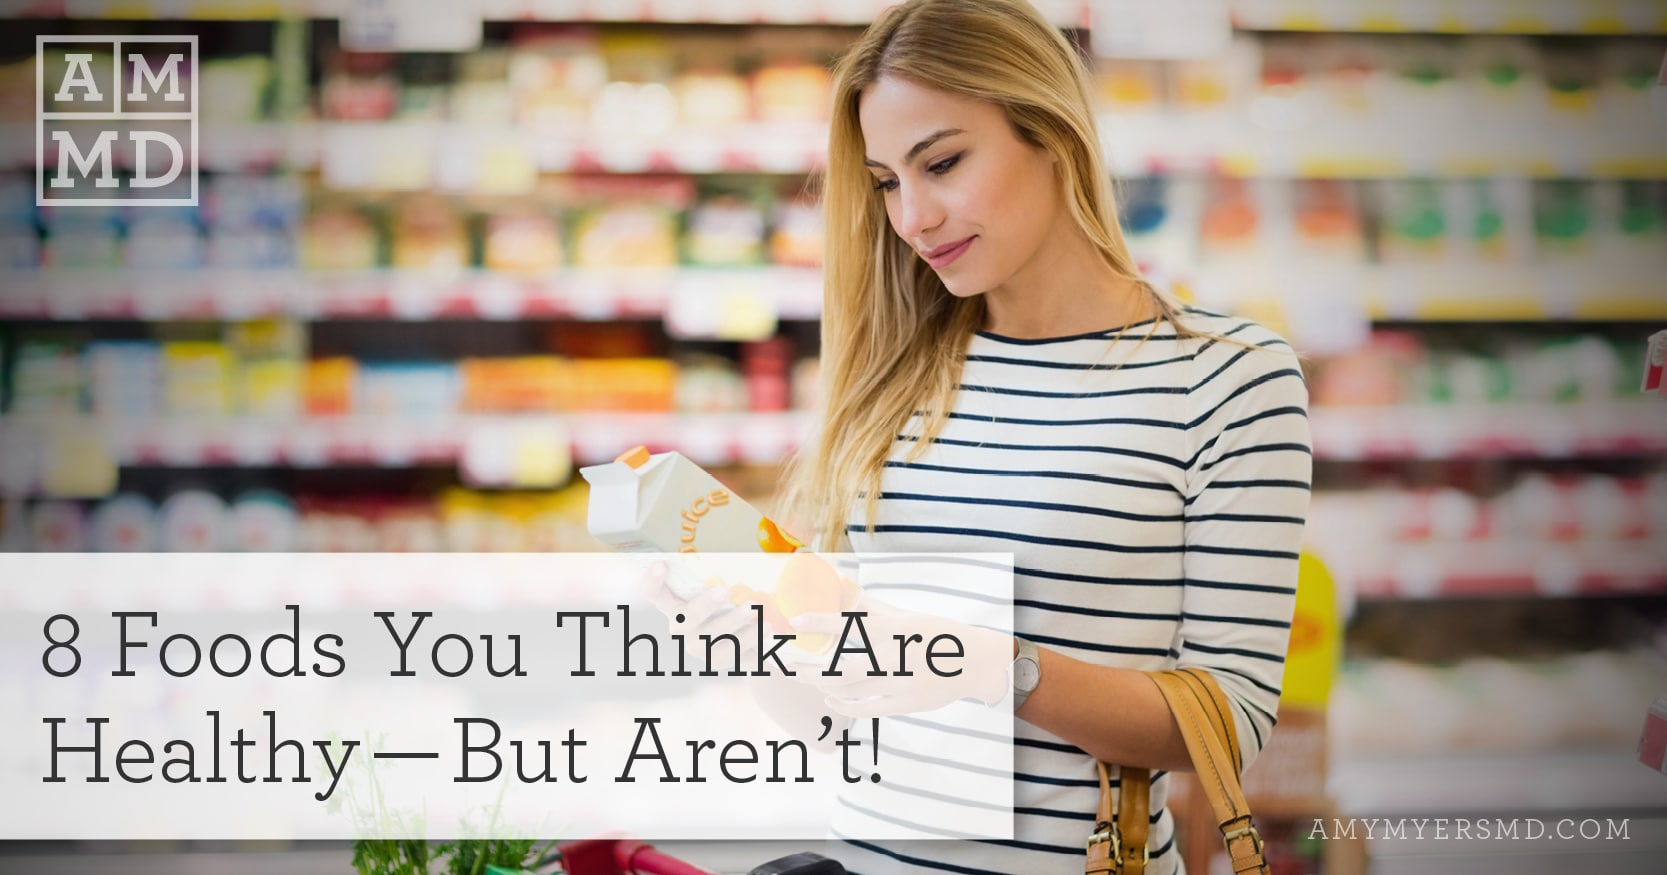 8 Foods You Think Are Healthy—But Aren't! - A Woman Shopping - Featured Image Amy Myers MD